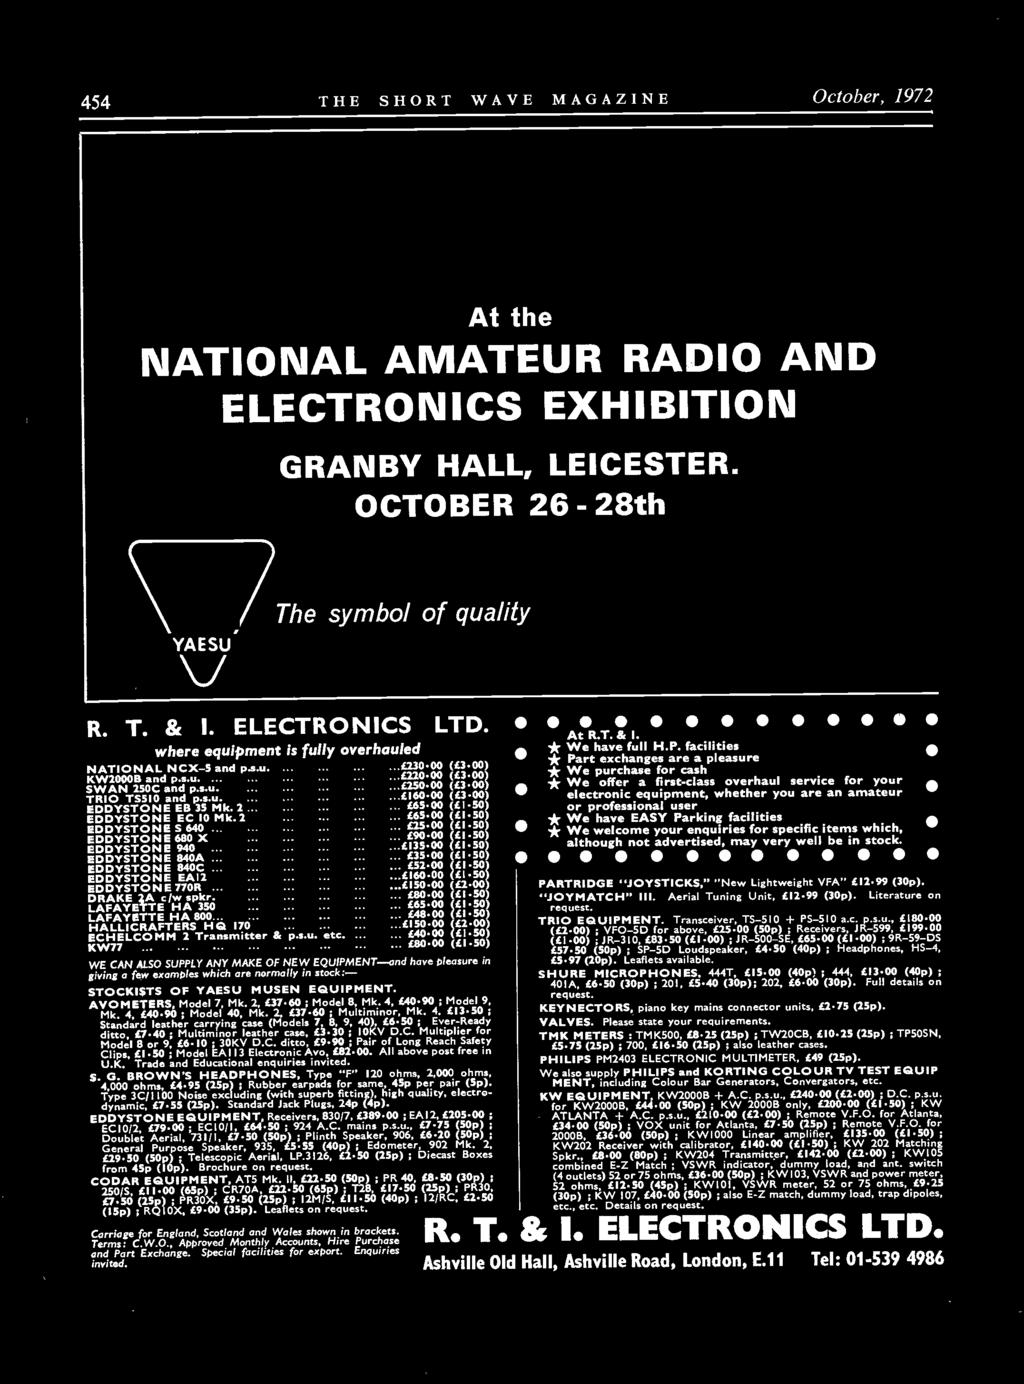 Vol Xxx October Number 8 Orld Wide Communication Pdf Tx2 Winch Wiring Diagram 2 2950 50p Telescopic Aerial Lp3i26 L250